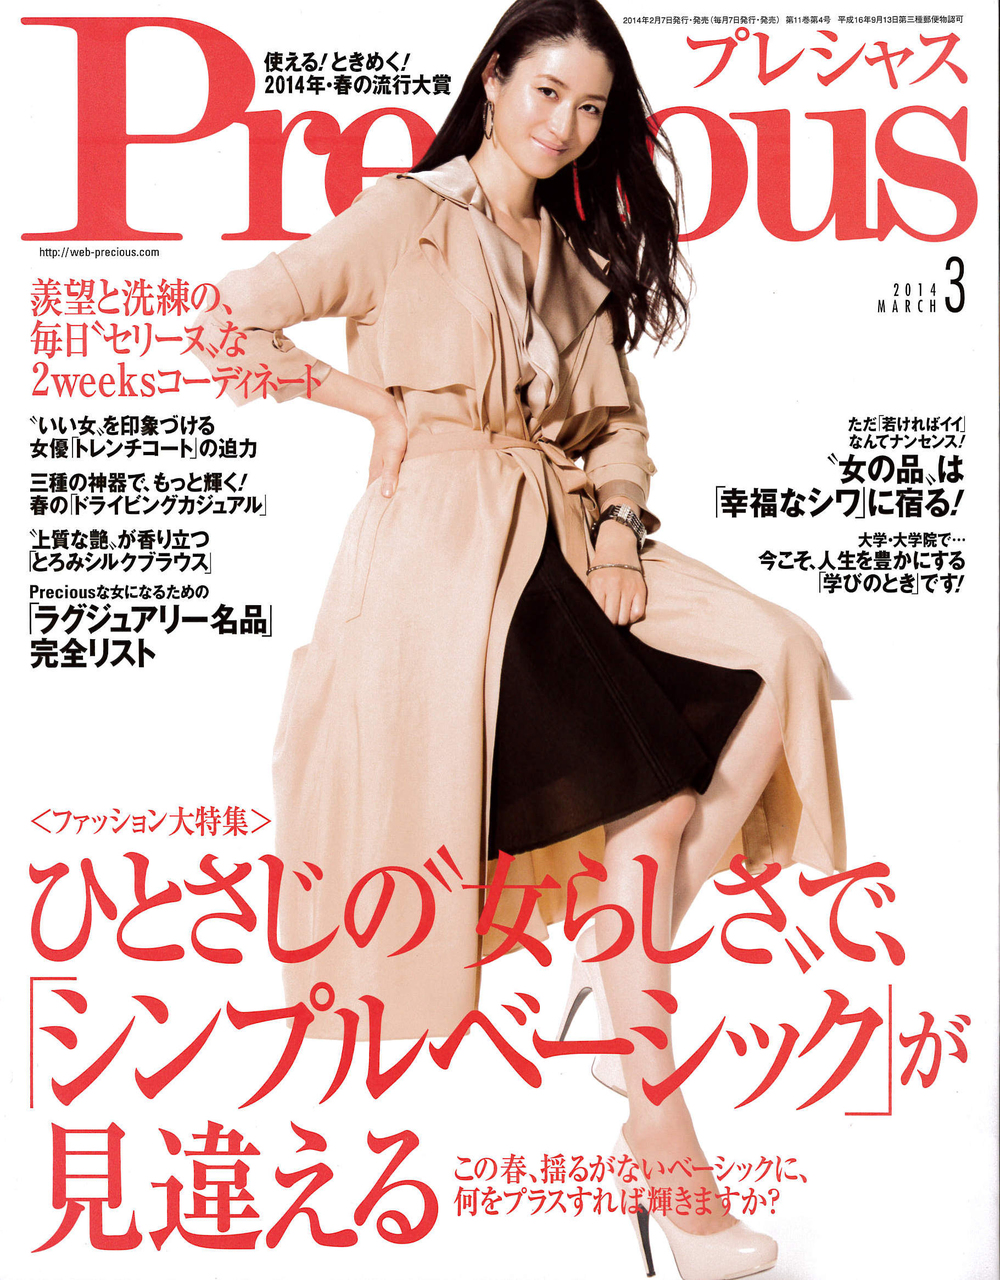 Simon Alcantara sterling silver hoops hand woven with antique silver cord on Ms. Koyuki. March 2014 cover.